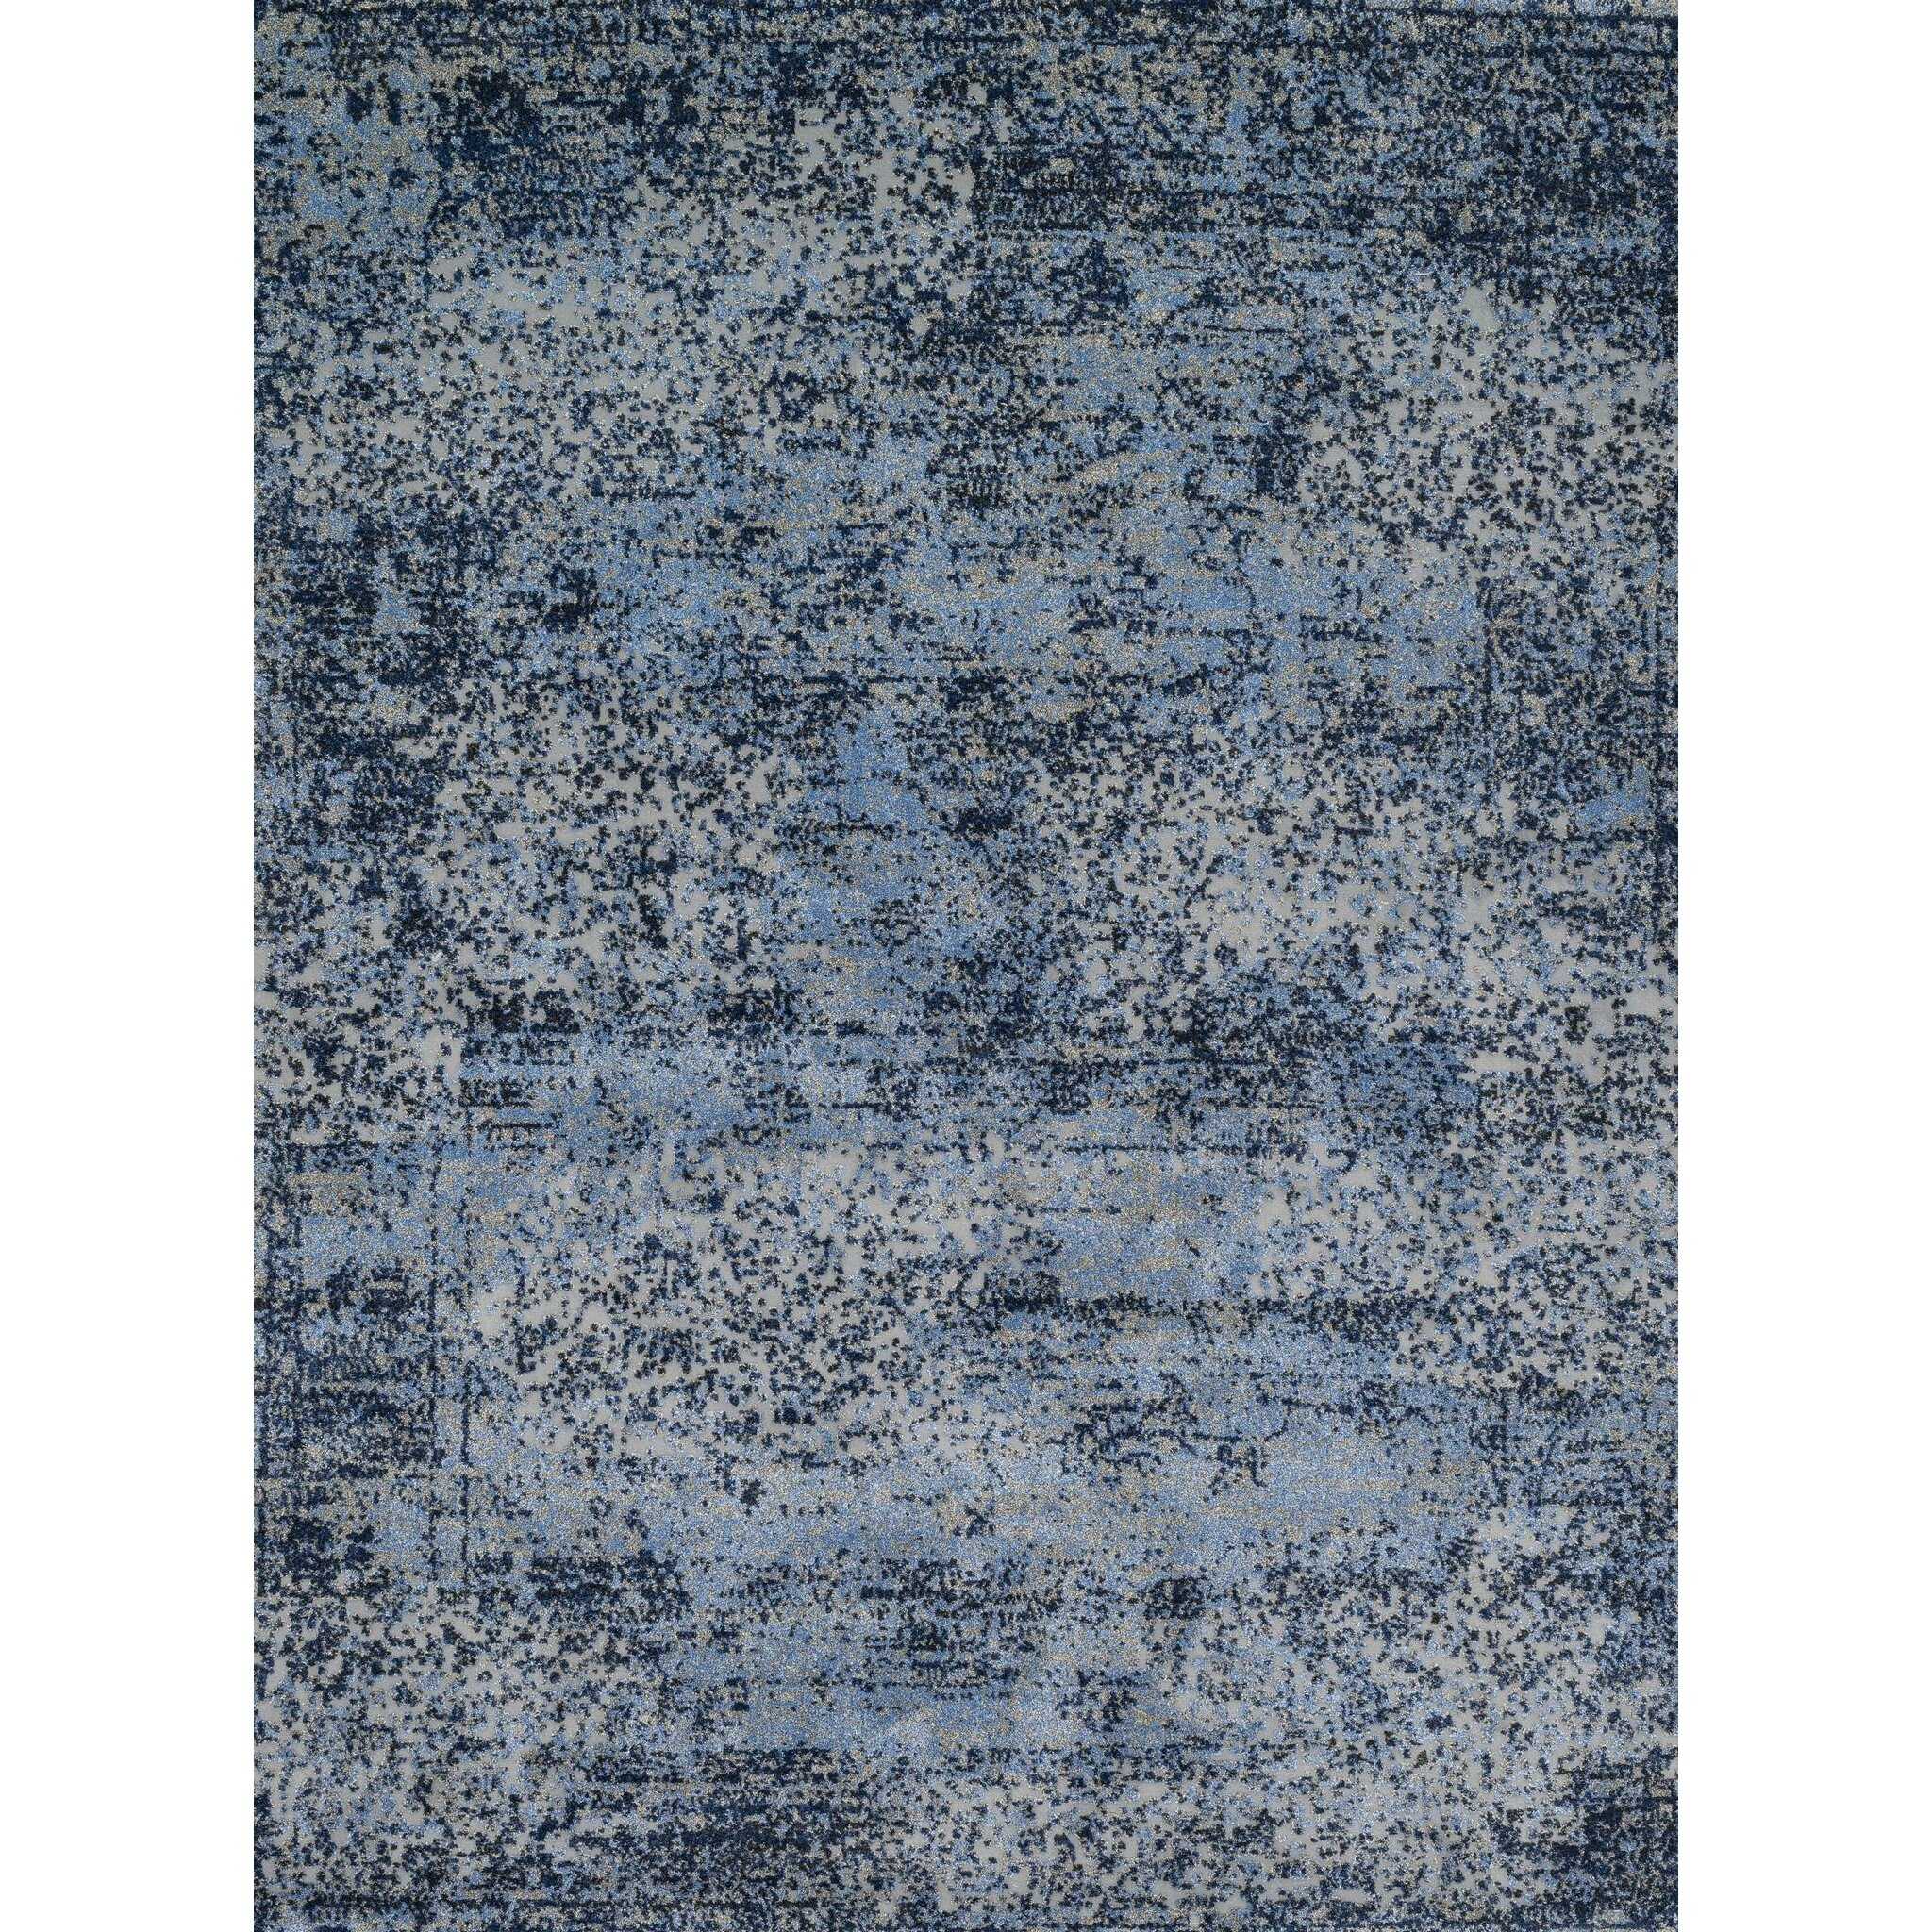 Loloi Rugs Viera Light Blue Gray Area Rug & Reviews